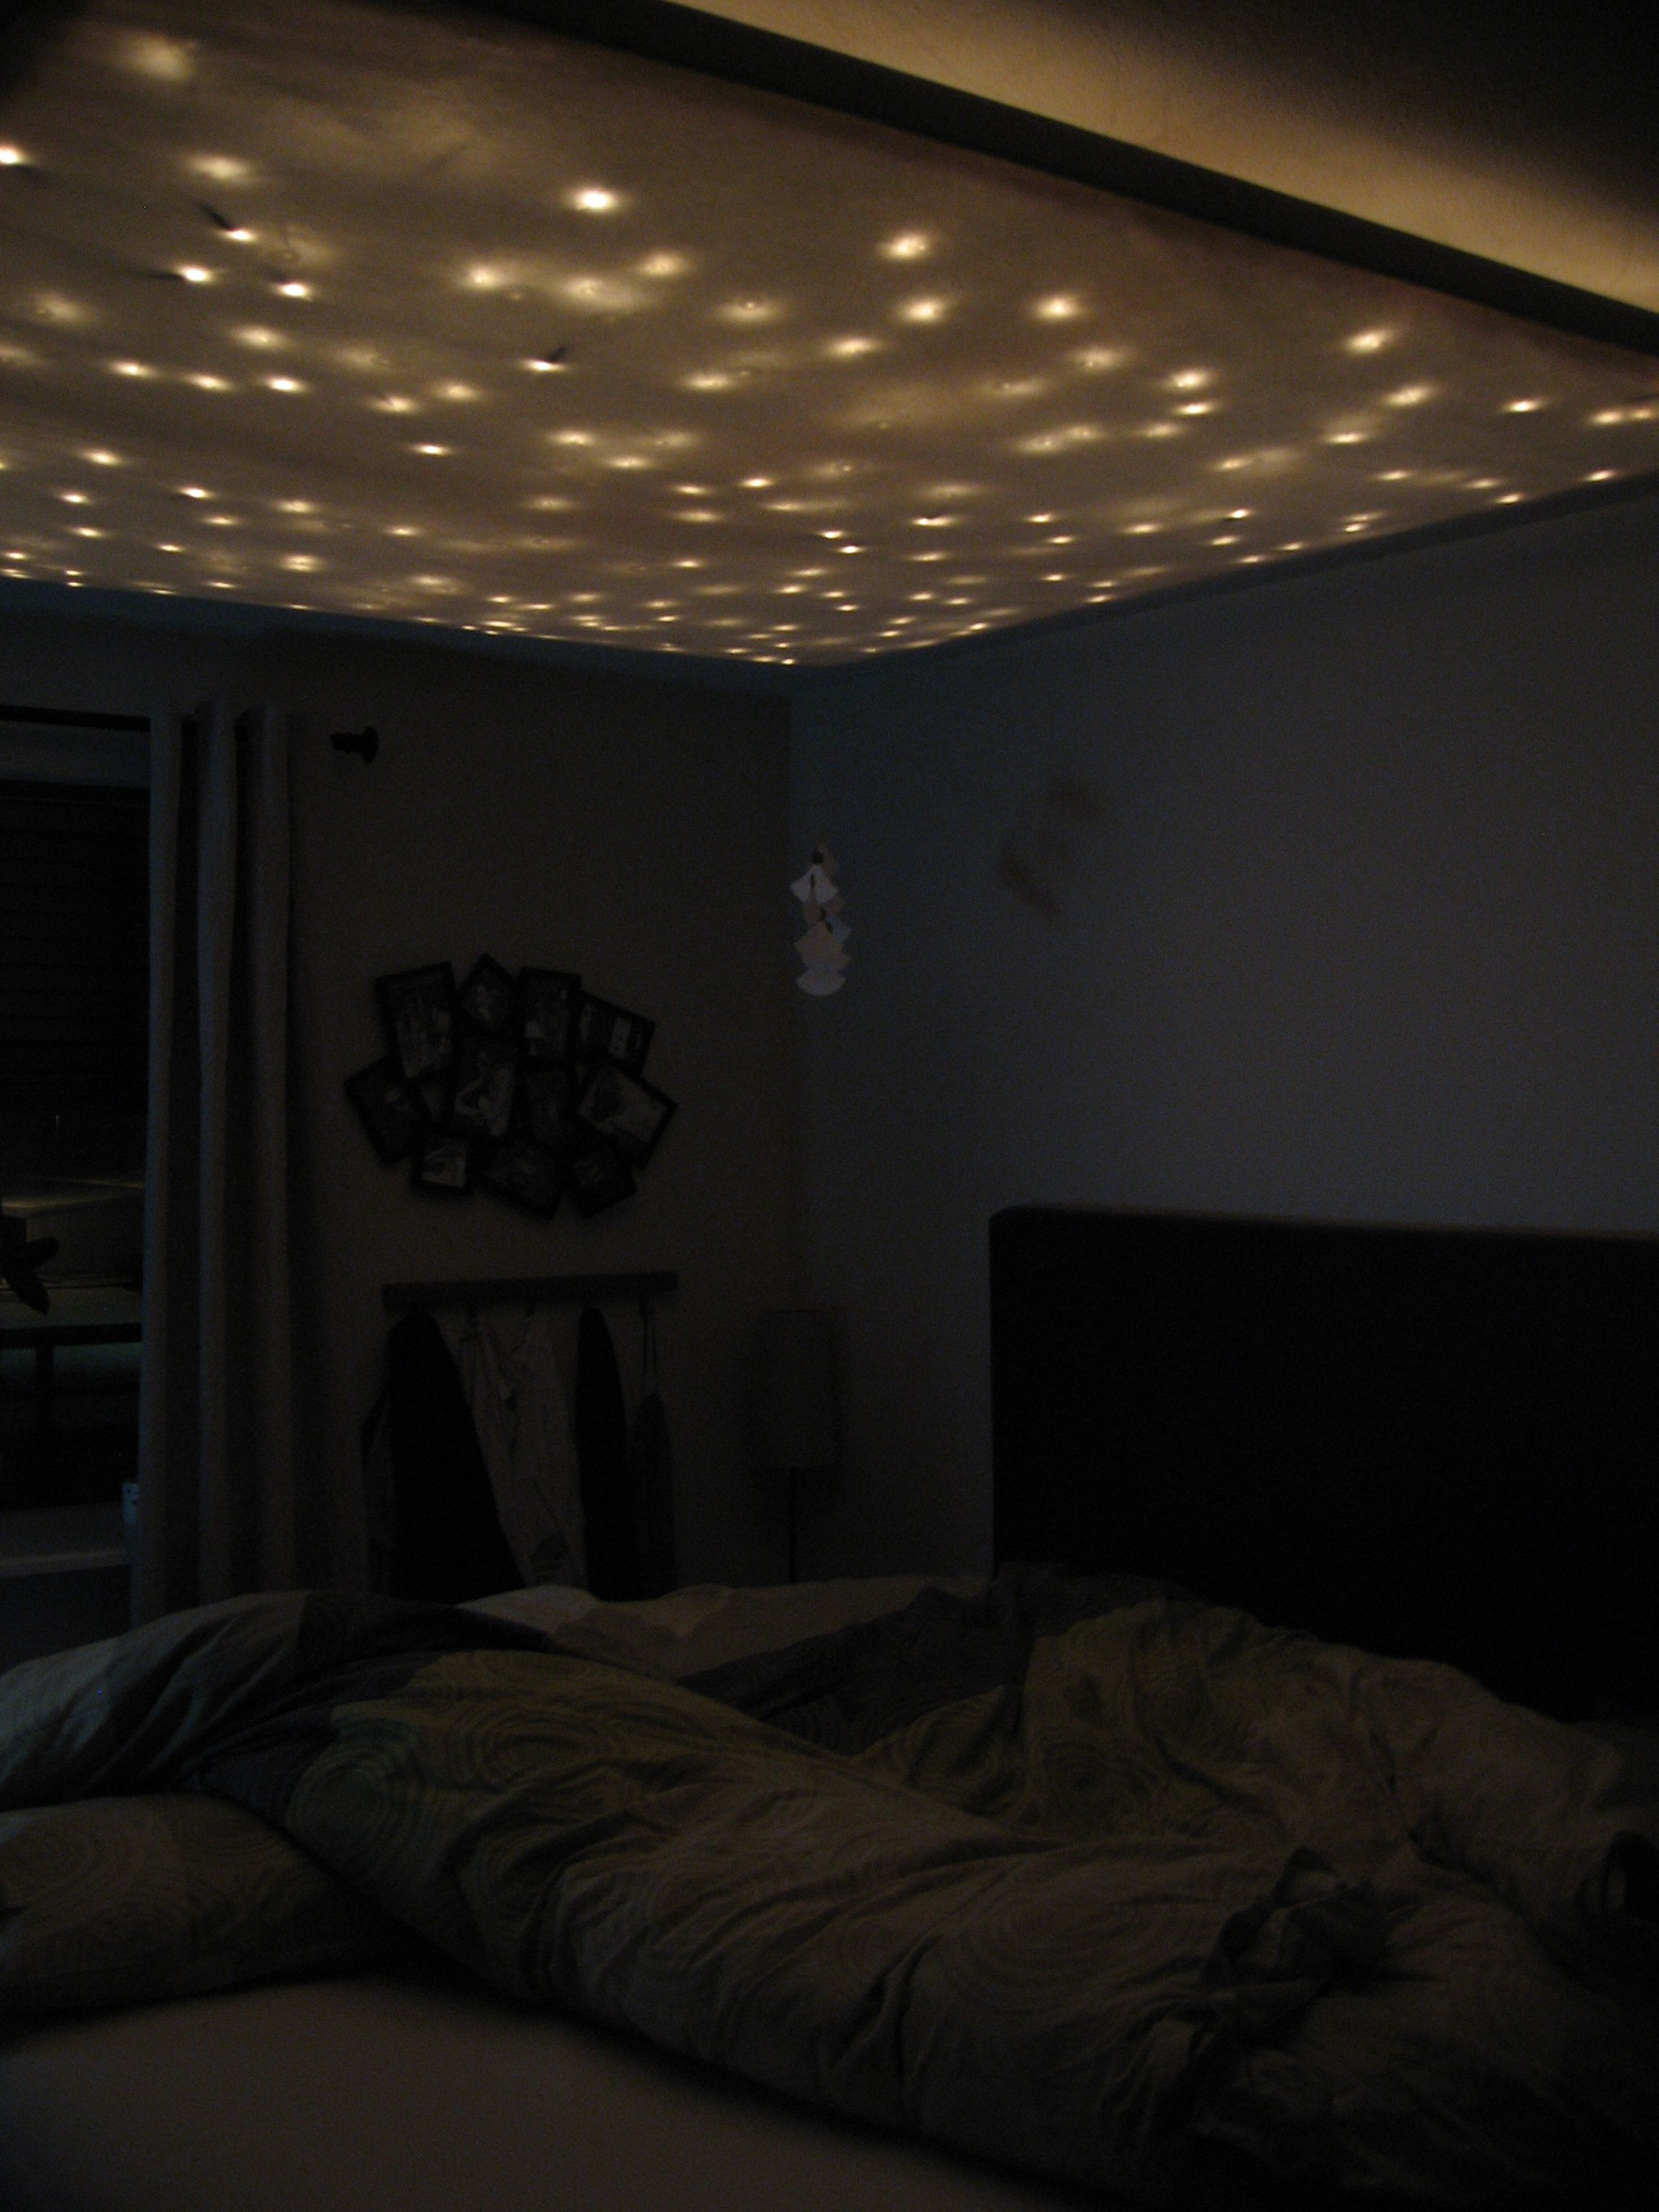 Bedroom christmas lights ideas - Mood Lighting W Xmas Lights And Fabric Http Www Reddit